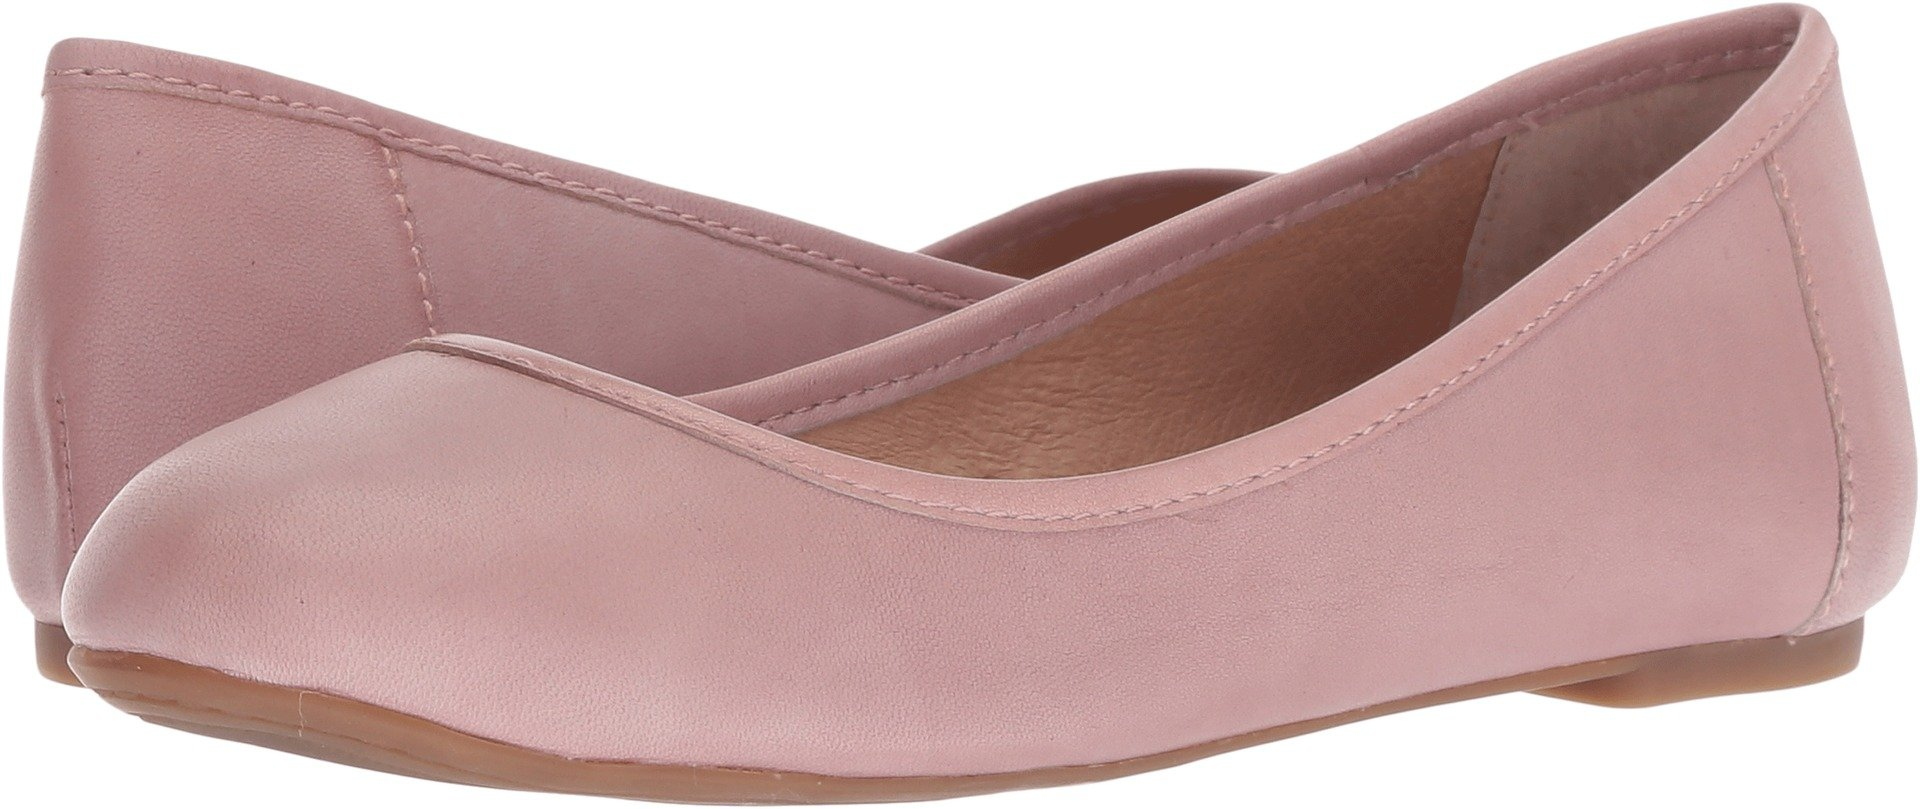 Lucky Brand Women's Eaden Baroque Rose 7.5 M US